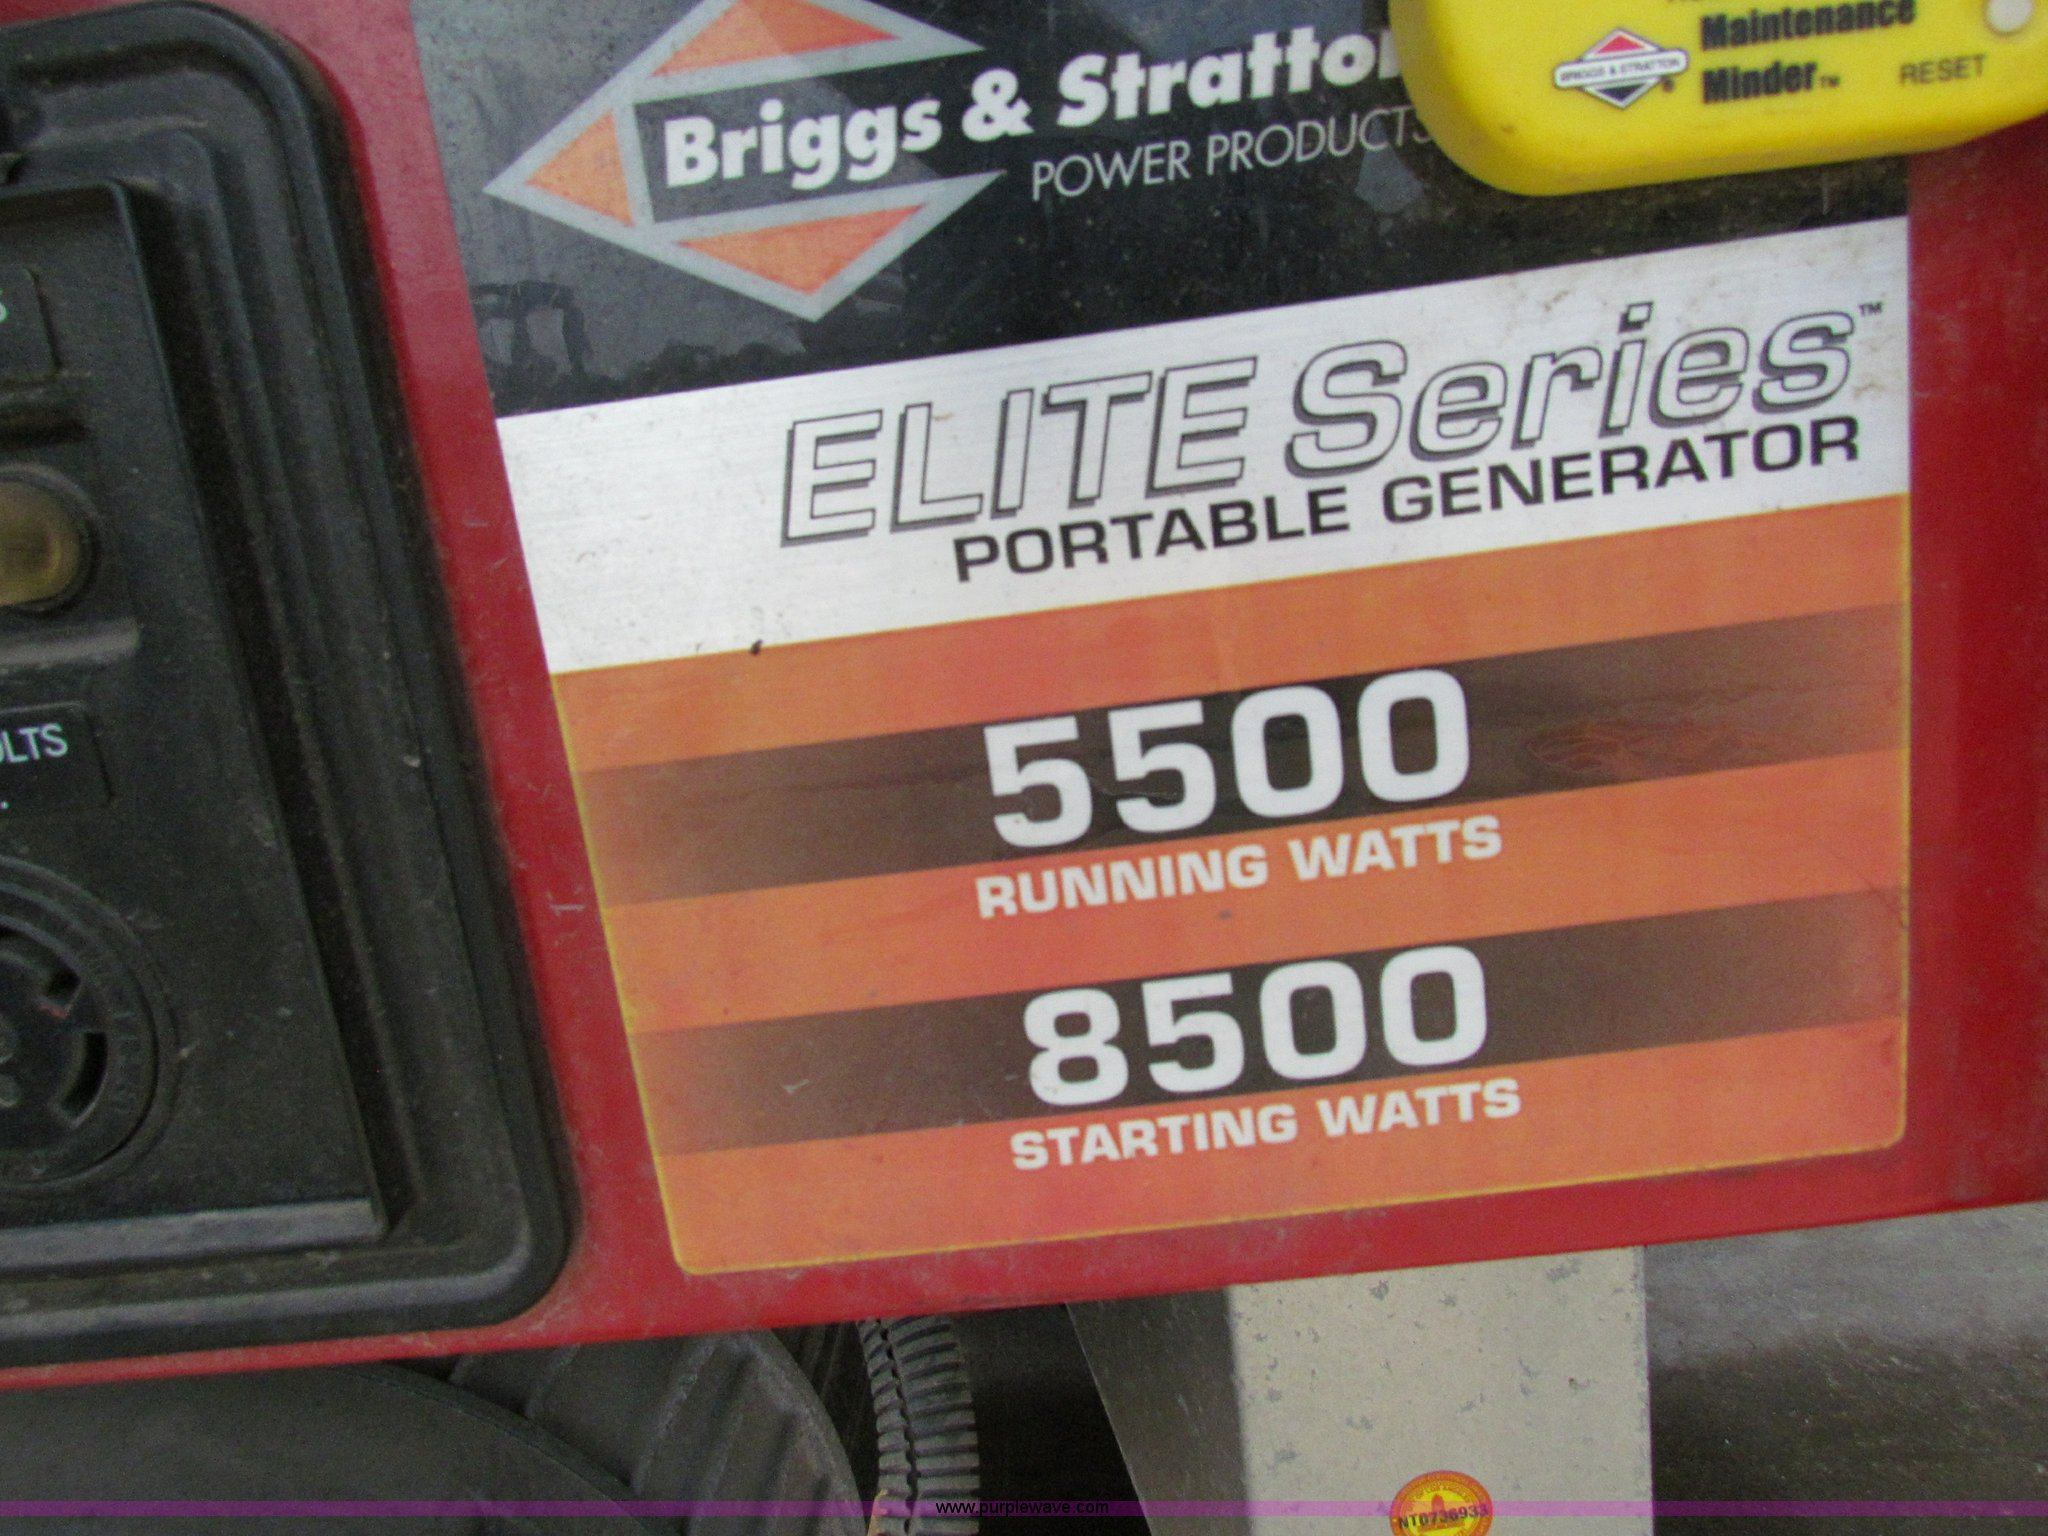 2004 Briggs & Stratton Elite series 01654 generator | Item N